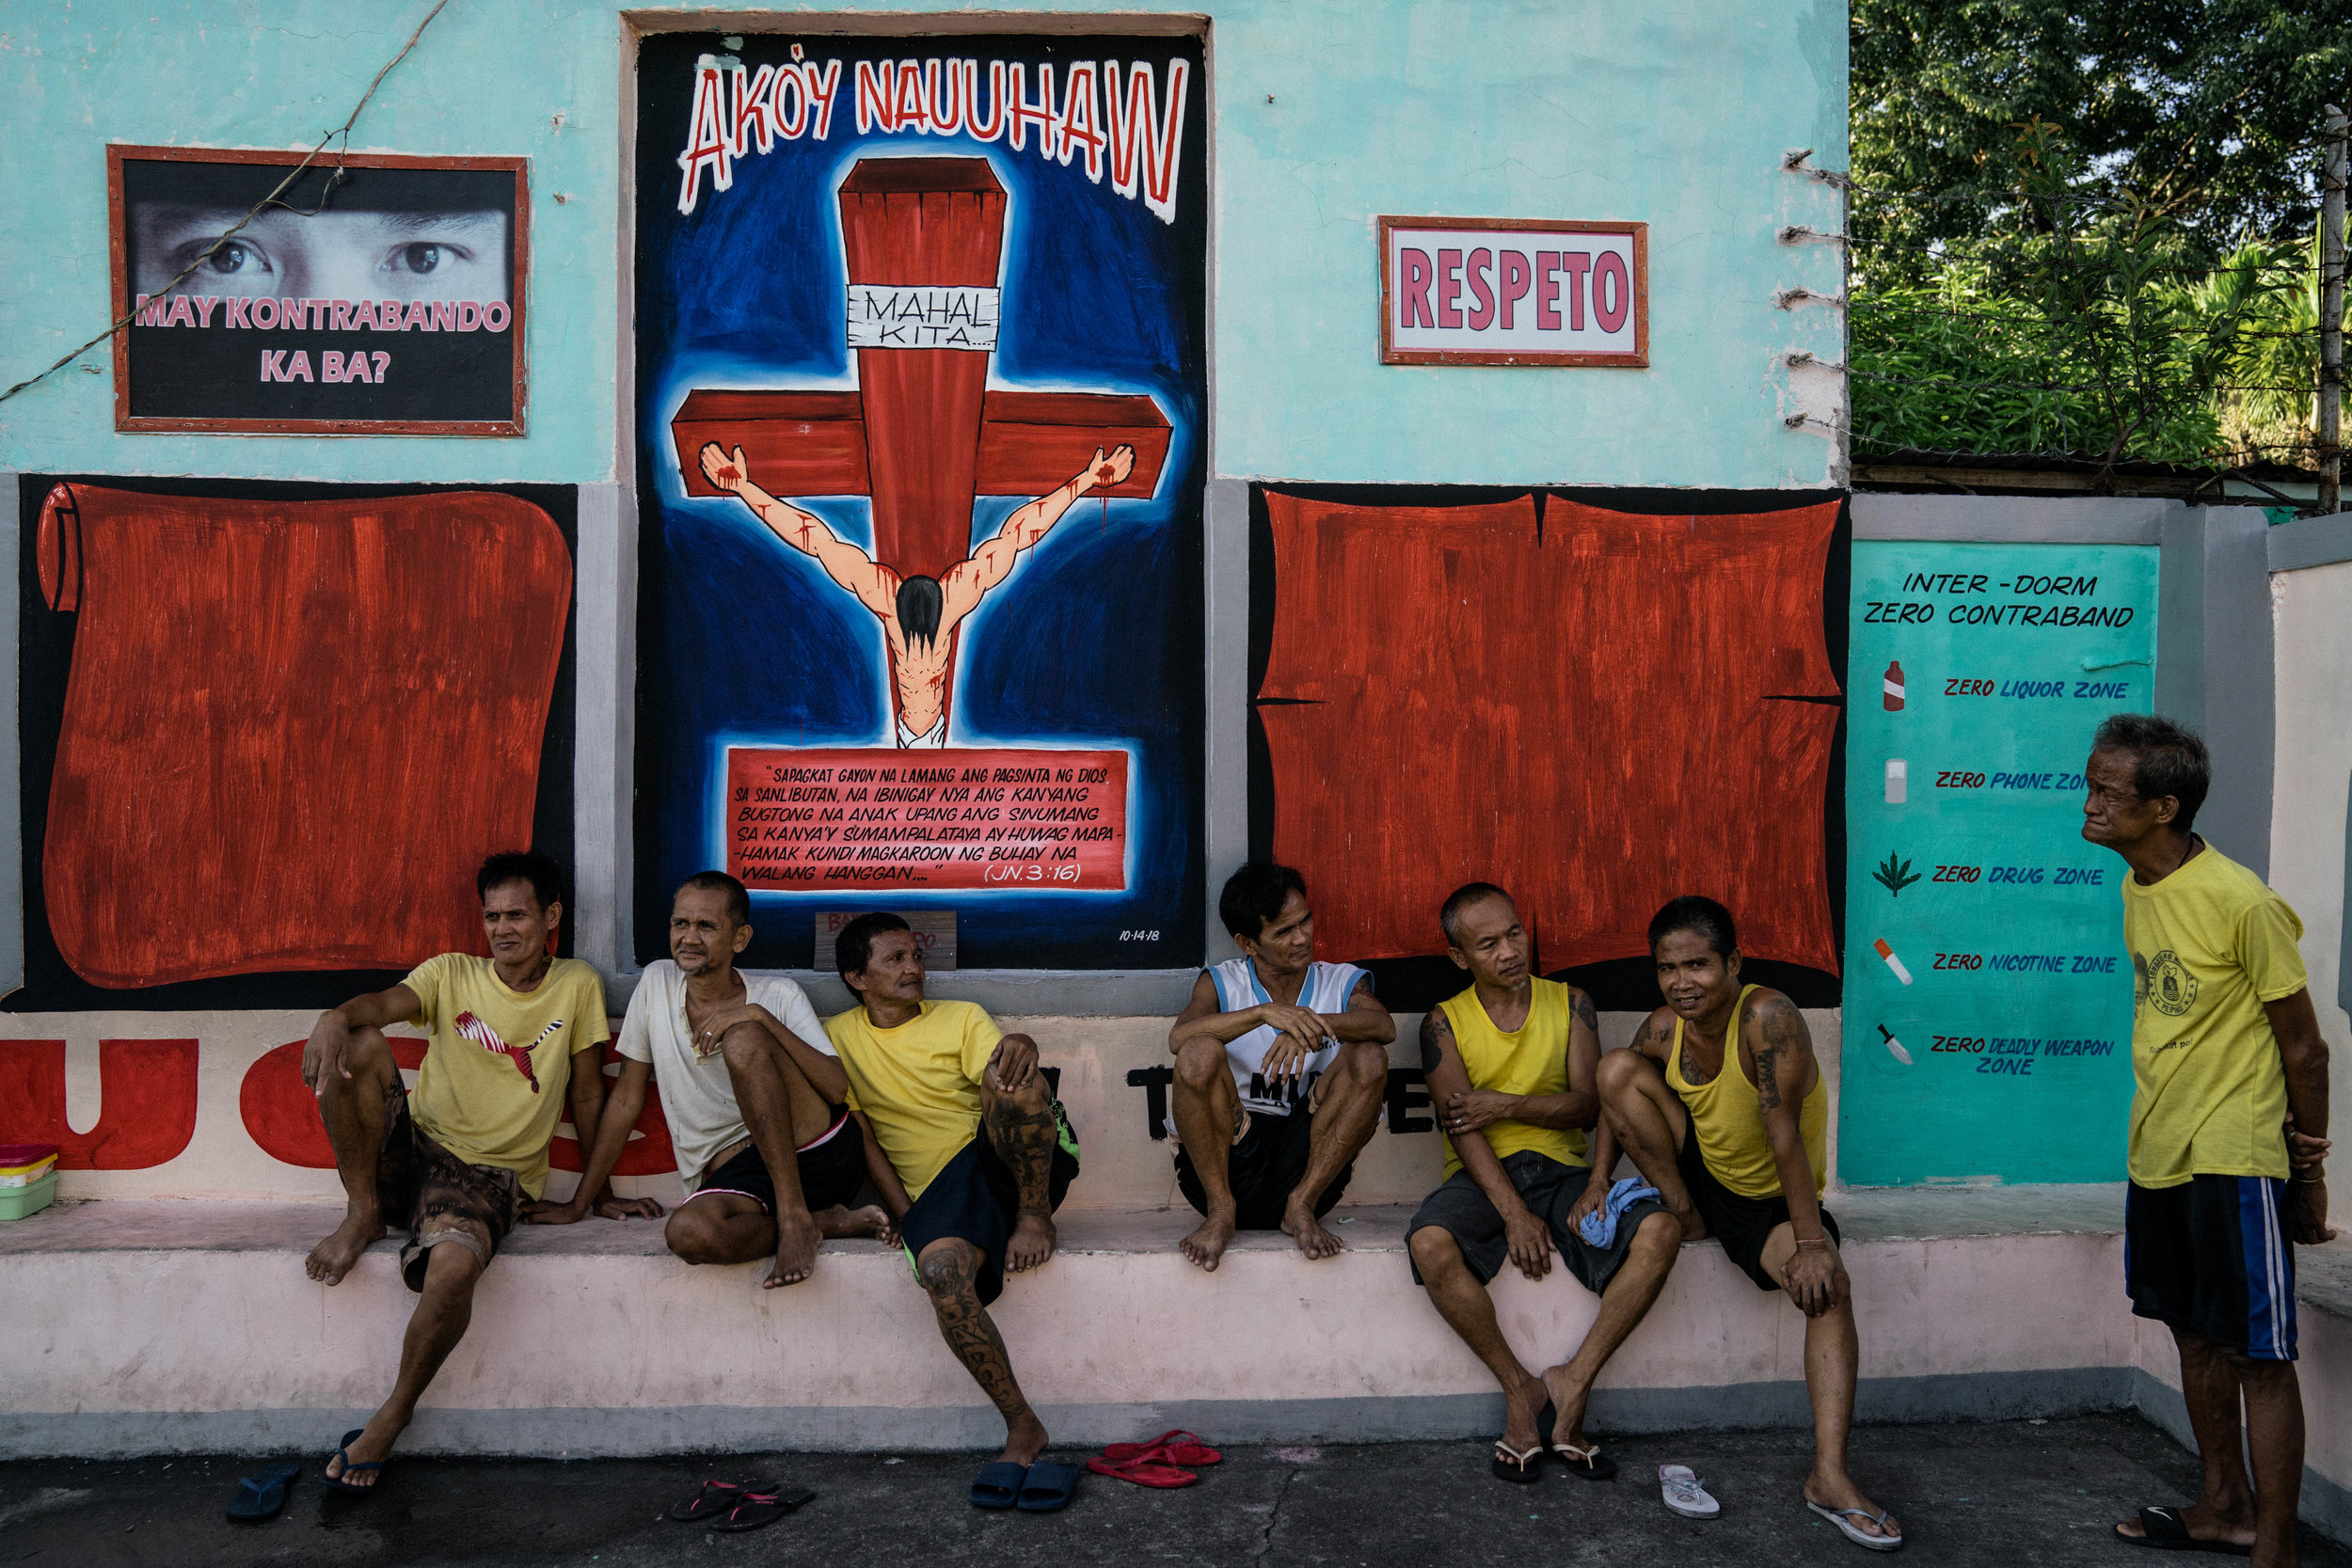 Men hang out by paintings depicting Jesus and contrabands in the Manila City Jail in Manila, Philippines on October 31, 2018. In the Philippines, men with pending cases spend months, sometimes years, in overcrowded cells waiting to be charged, sentenced, or tried.